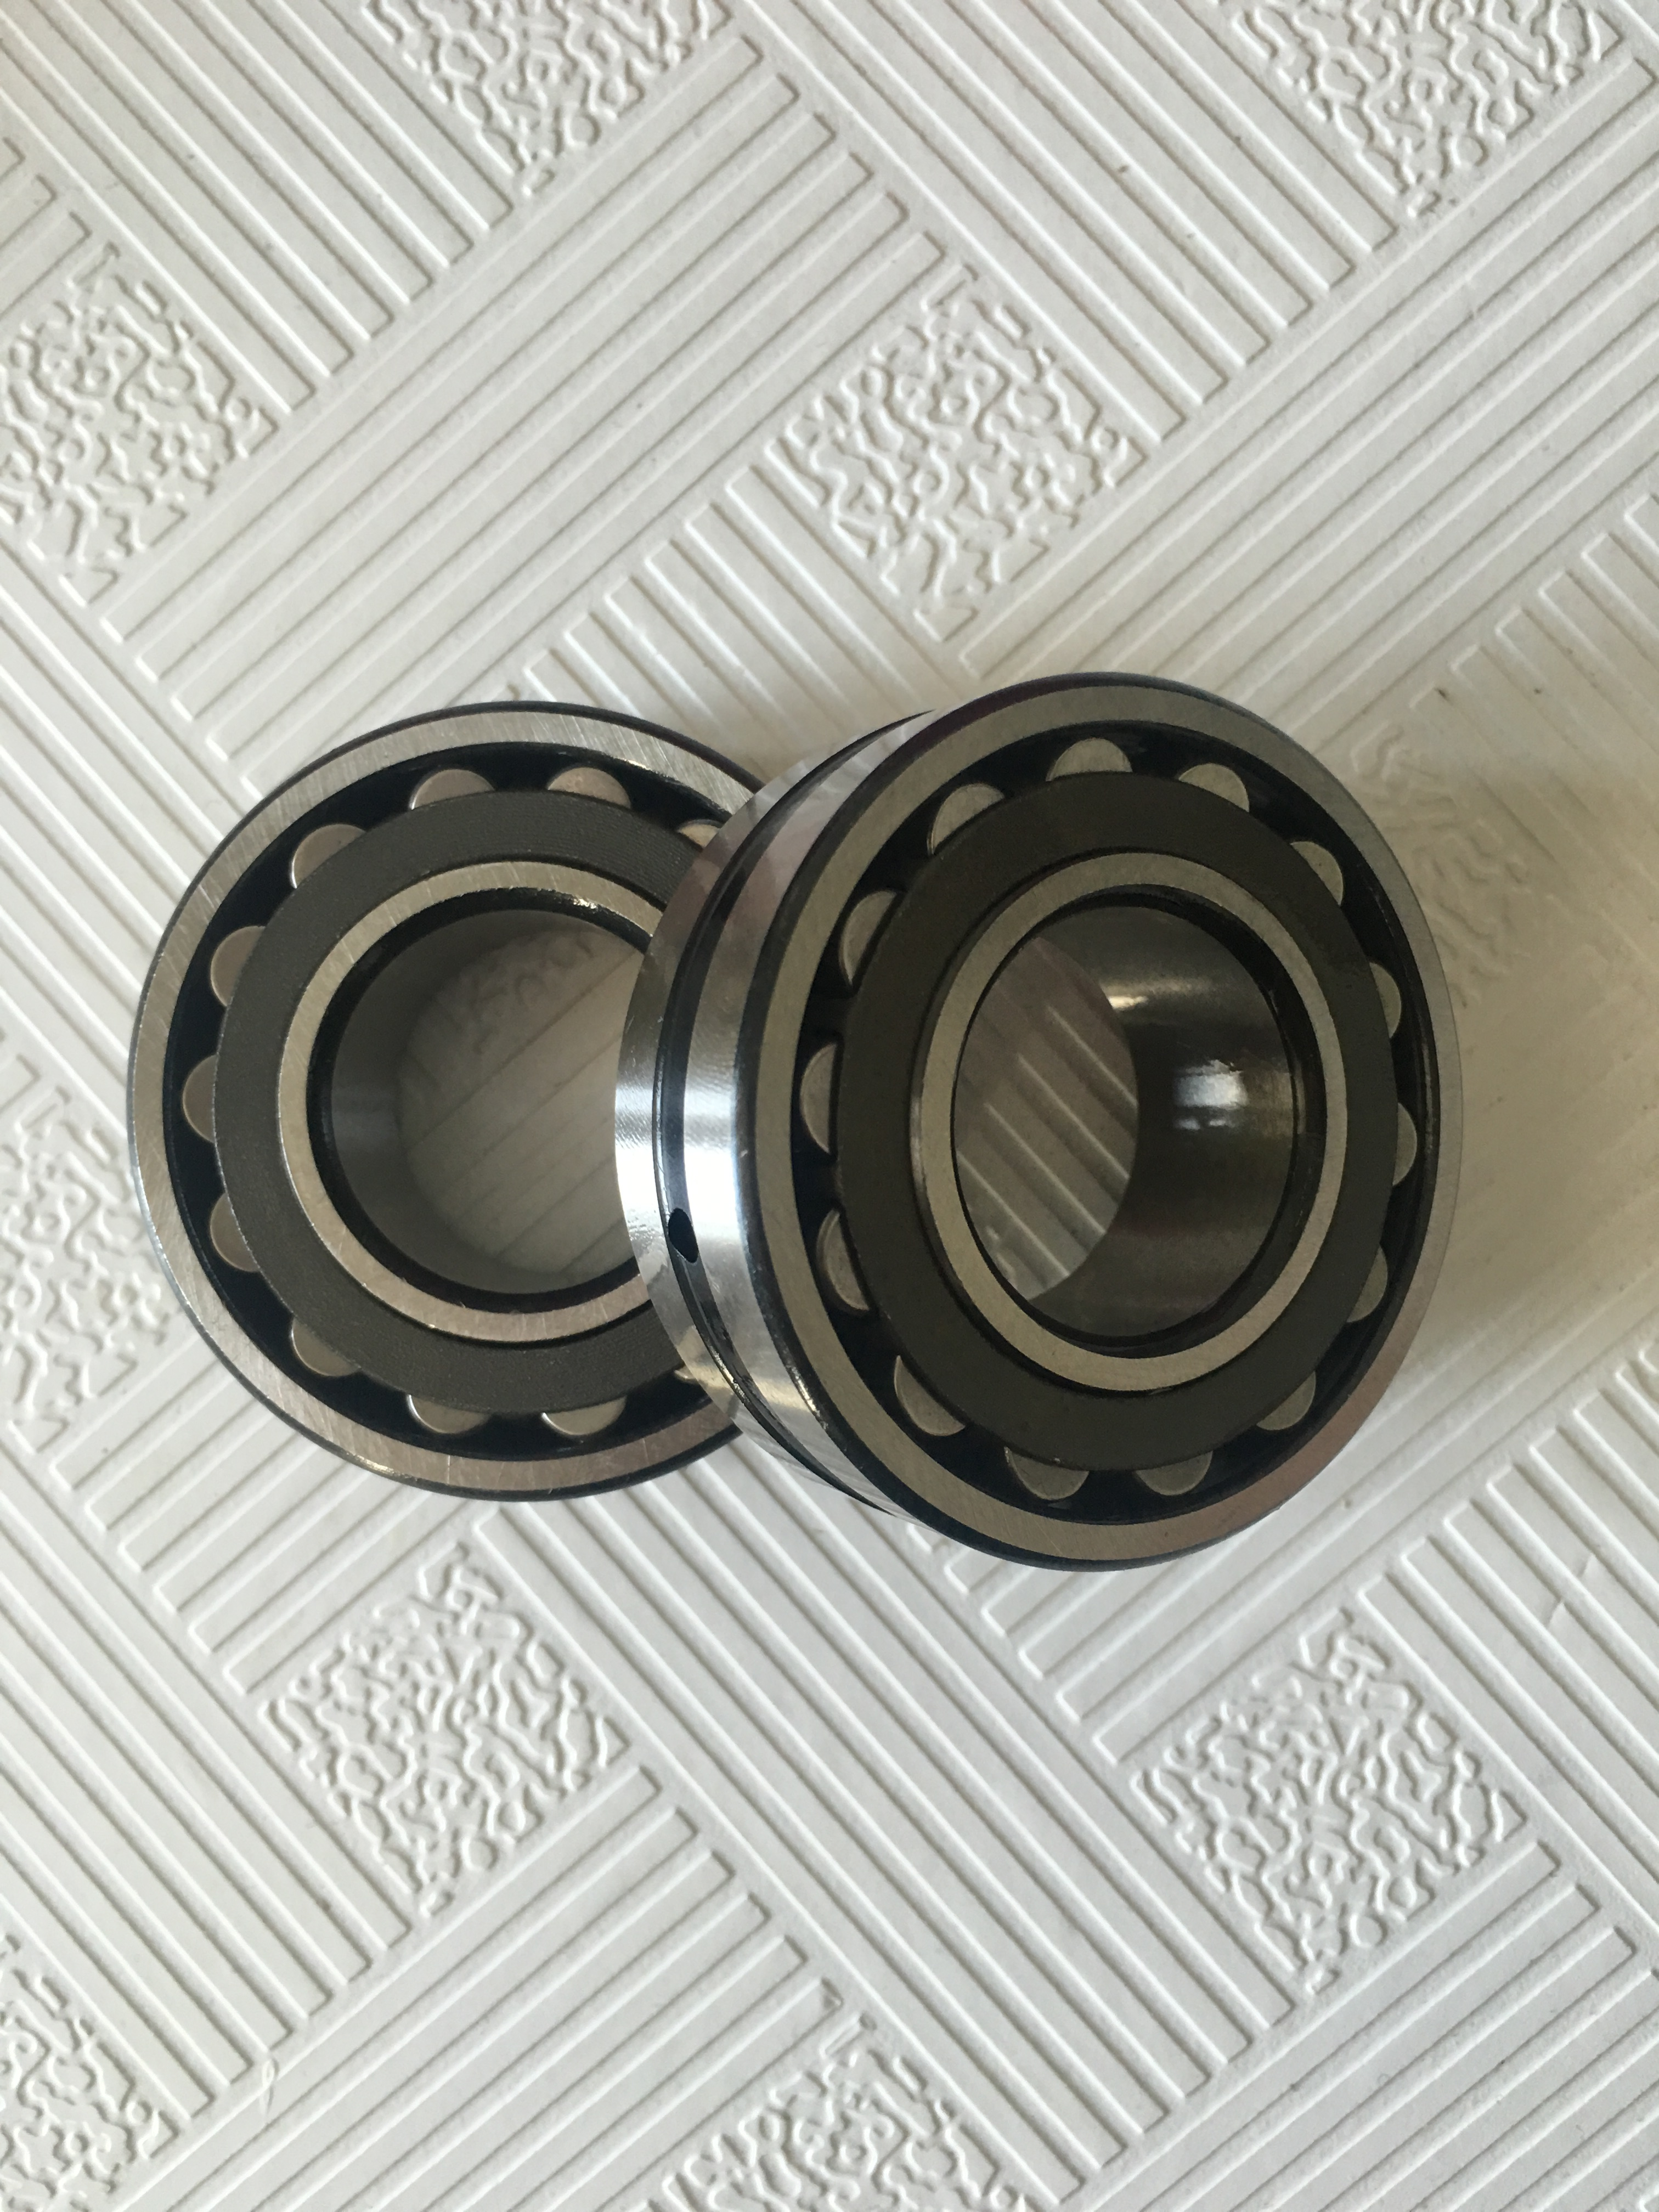 22324 22324CA 22324CA/W33 120x260x86 3624 53624 53624HK Spherical Roller Bearings Self-aligning Cylindrical Bore 2018 new girls in the winter of the south korean version of the thick down jacket with a long coat in the hair collar and jacket